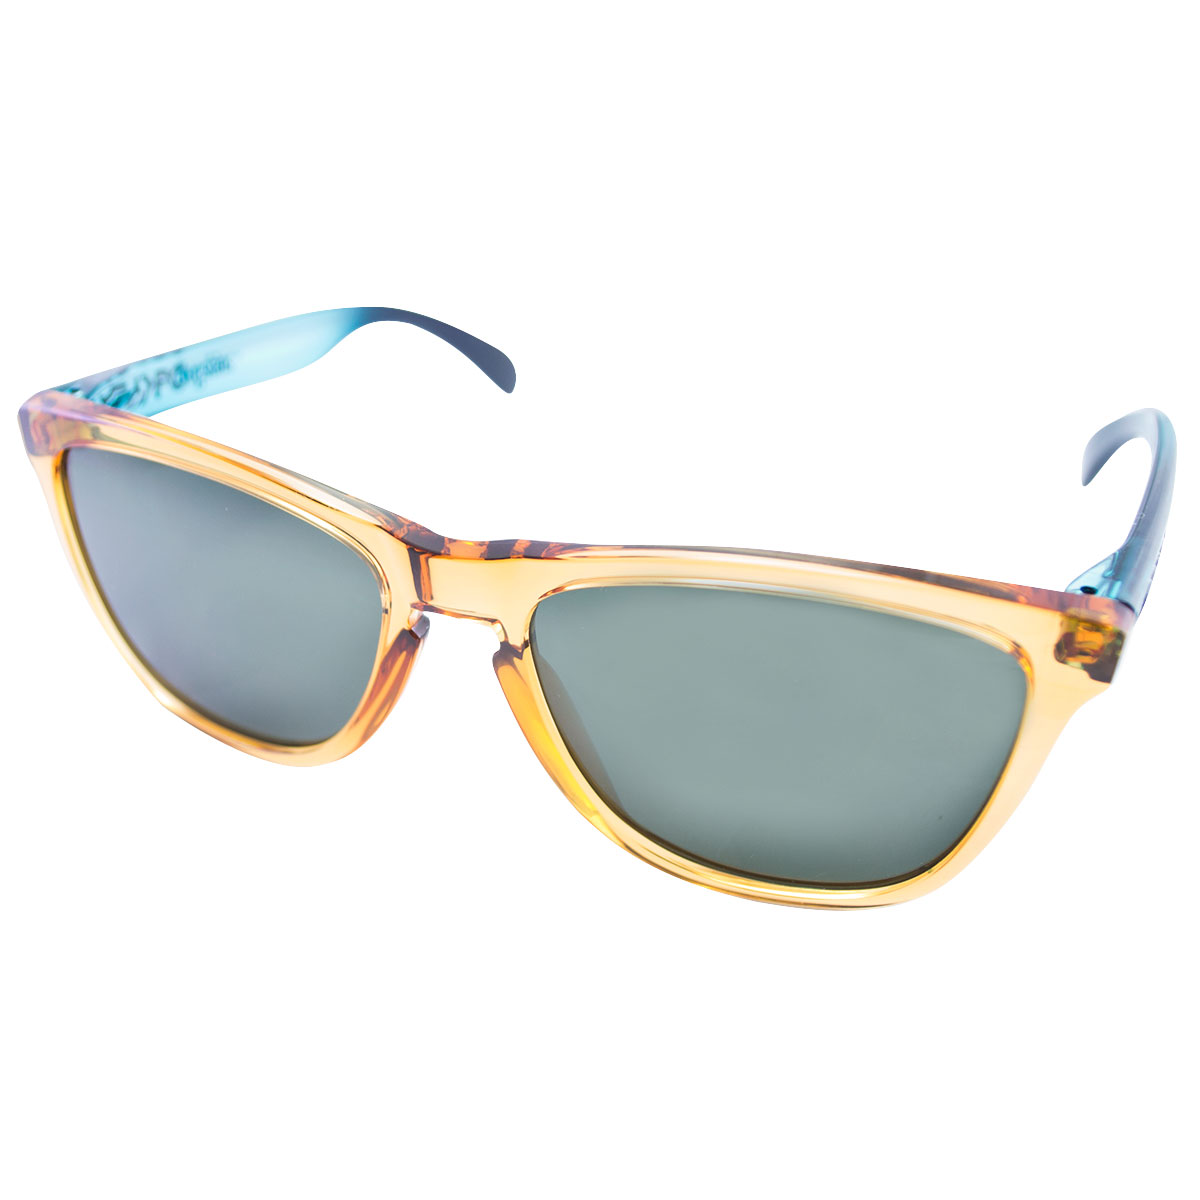 48f9340d643e7 Óculos Oakley Frogskins Surf Collection Ochre and Blue Lente Dark Grey ...